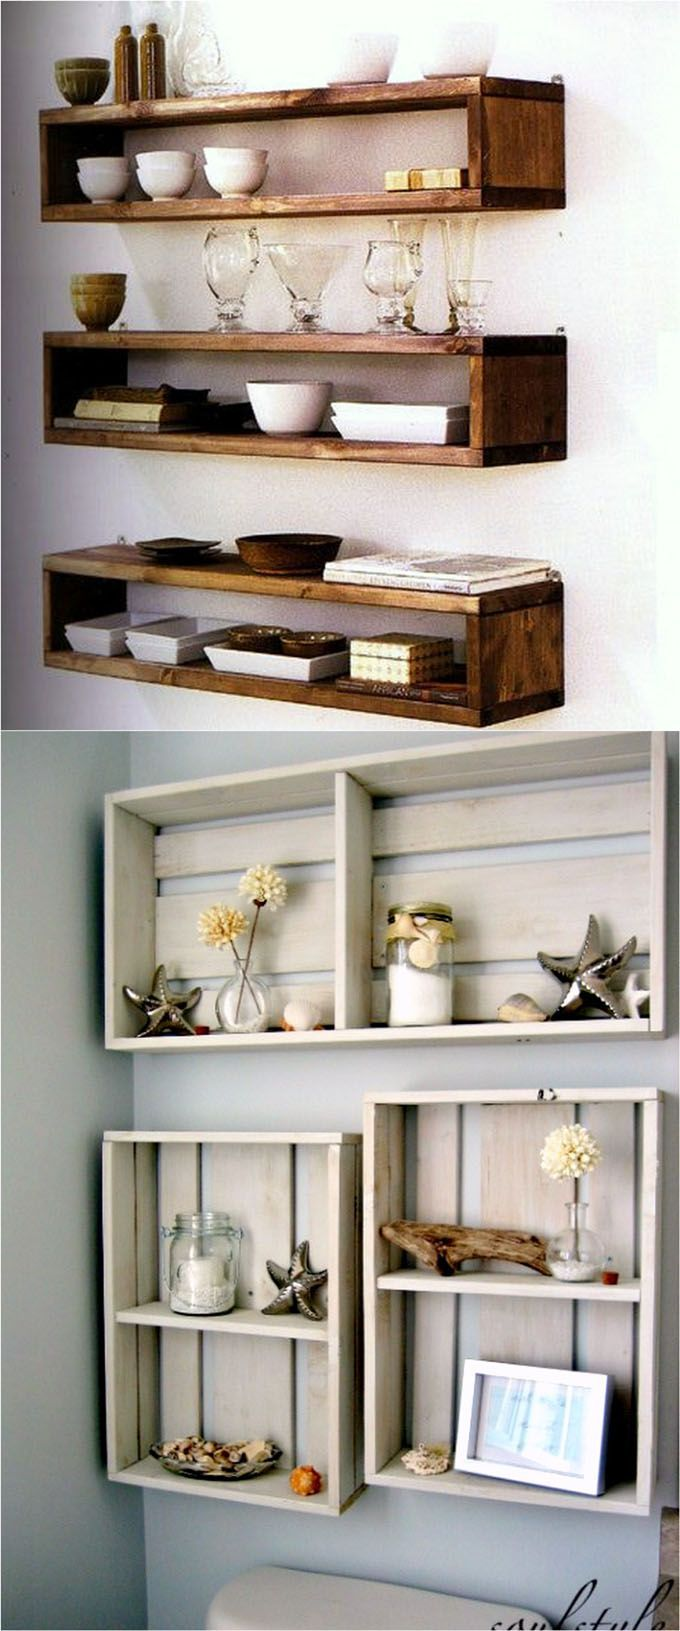 How To Hang Floating Shelves Gorgeous 16 Easy And Stylish Diy Floating Shelves & Wall Shelves  Wall 2018